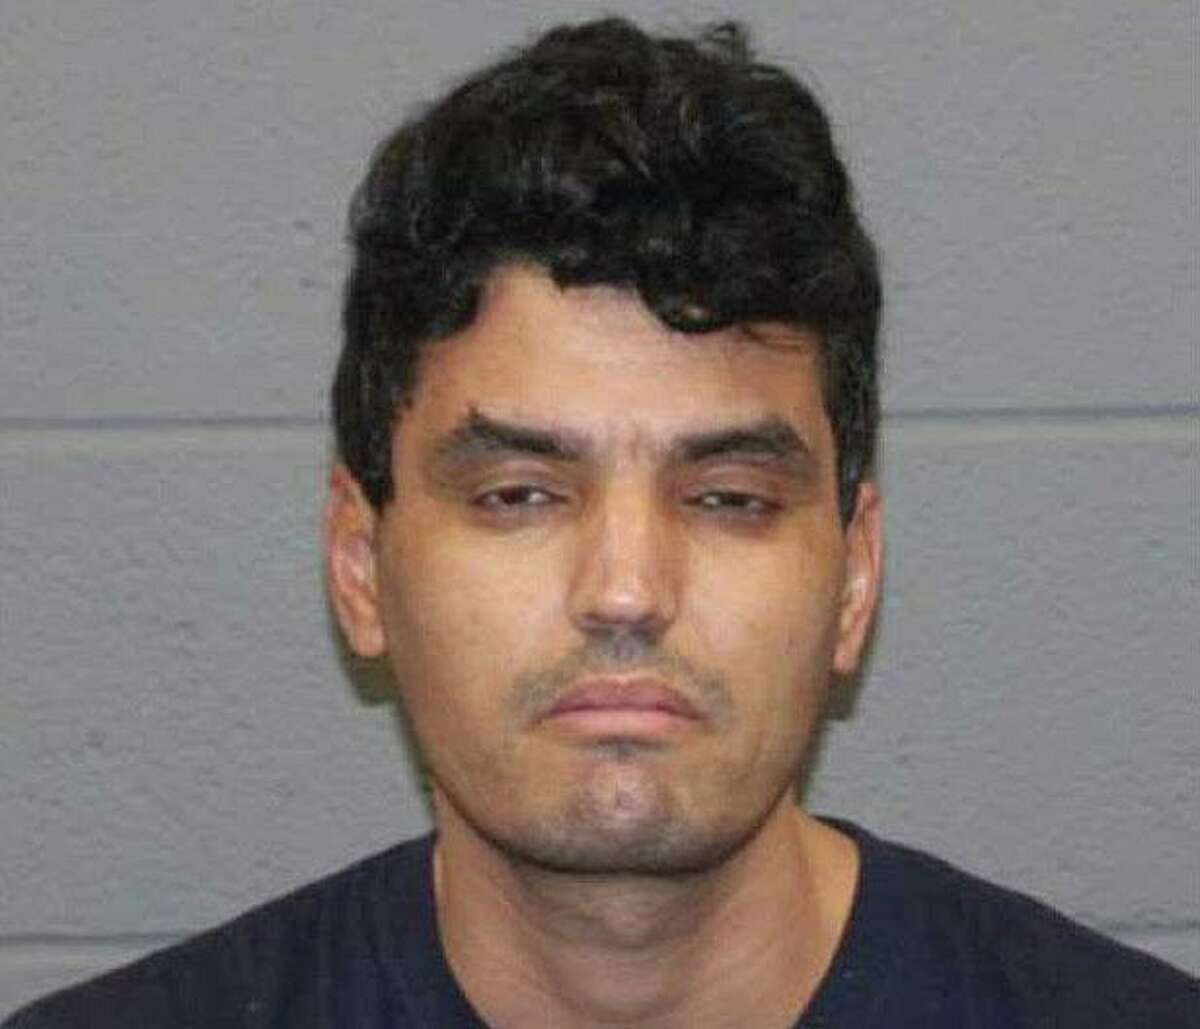 Hichman Asfir, 40, of Atlantic Street in Stamford, Conn., was charged with first-degree assault and second-degree breach of peace.